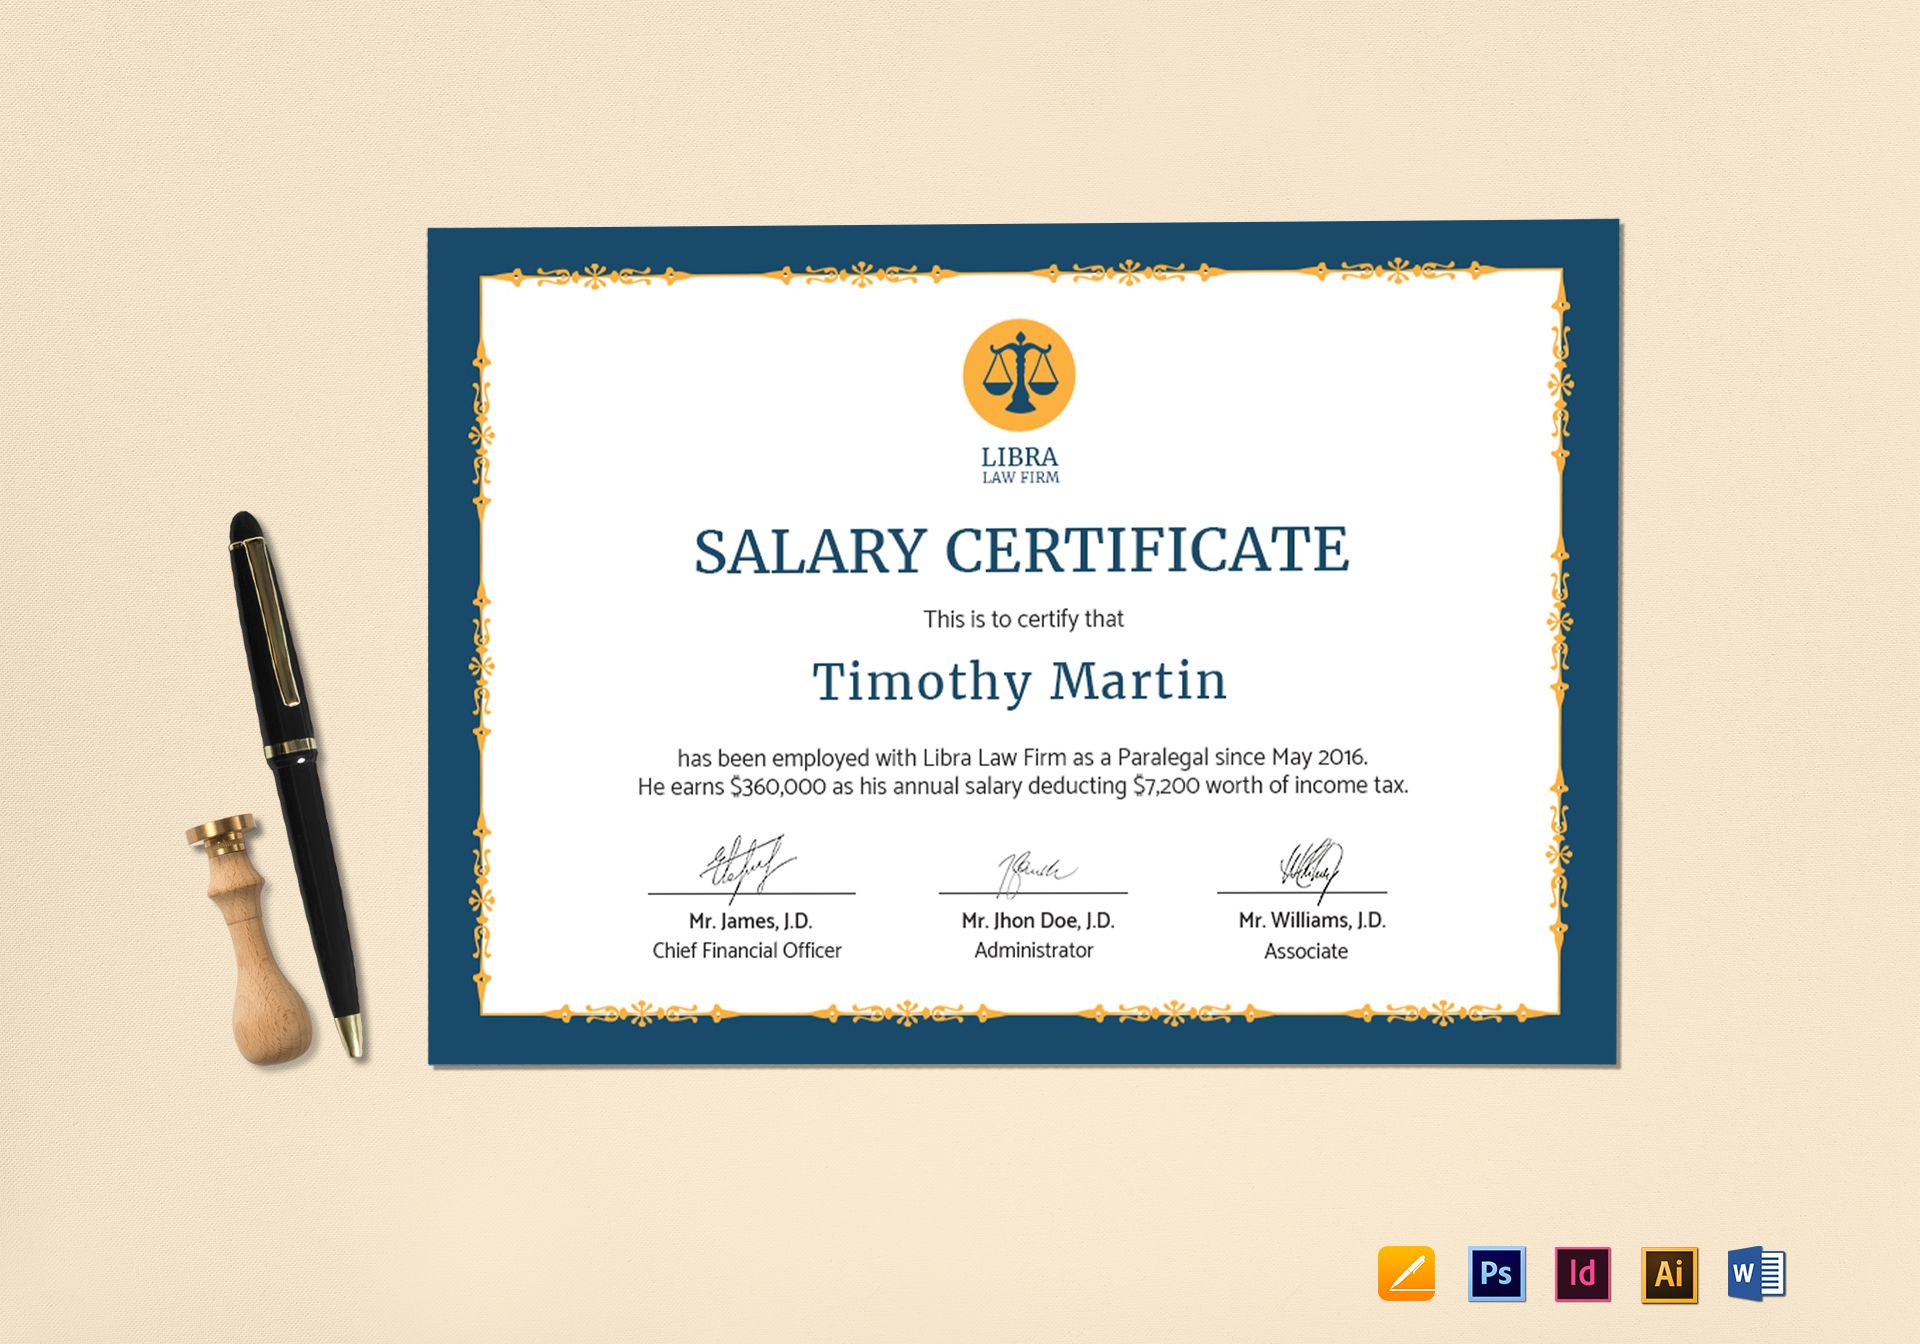 Employee Certificate Design Template In Psd Word Illustrator